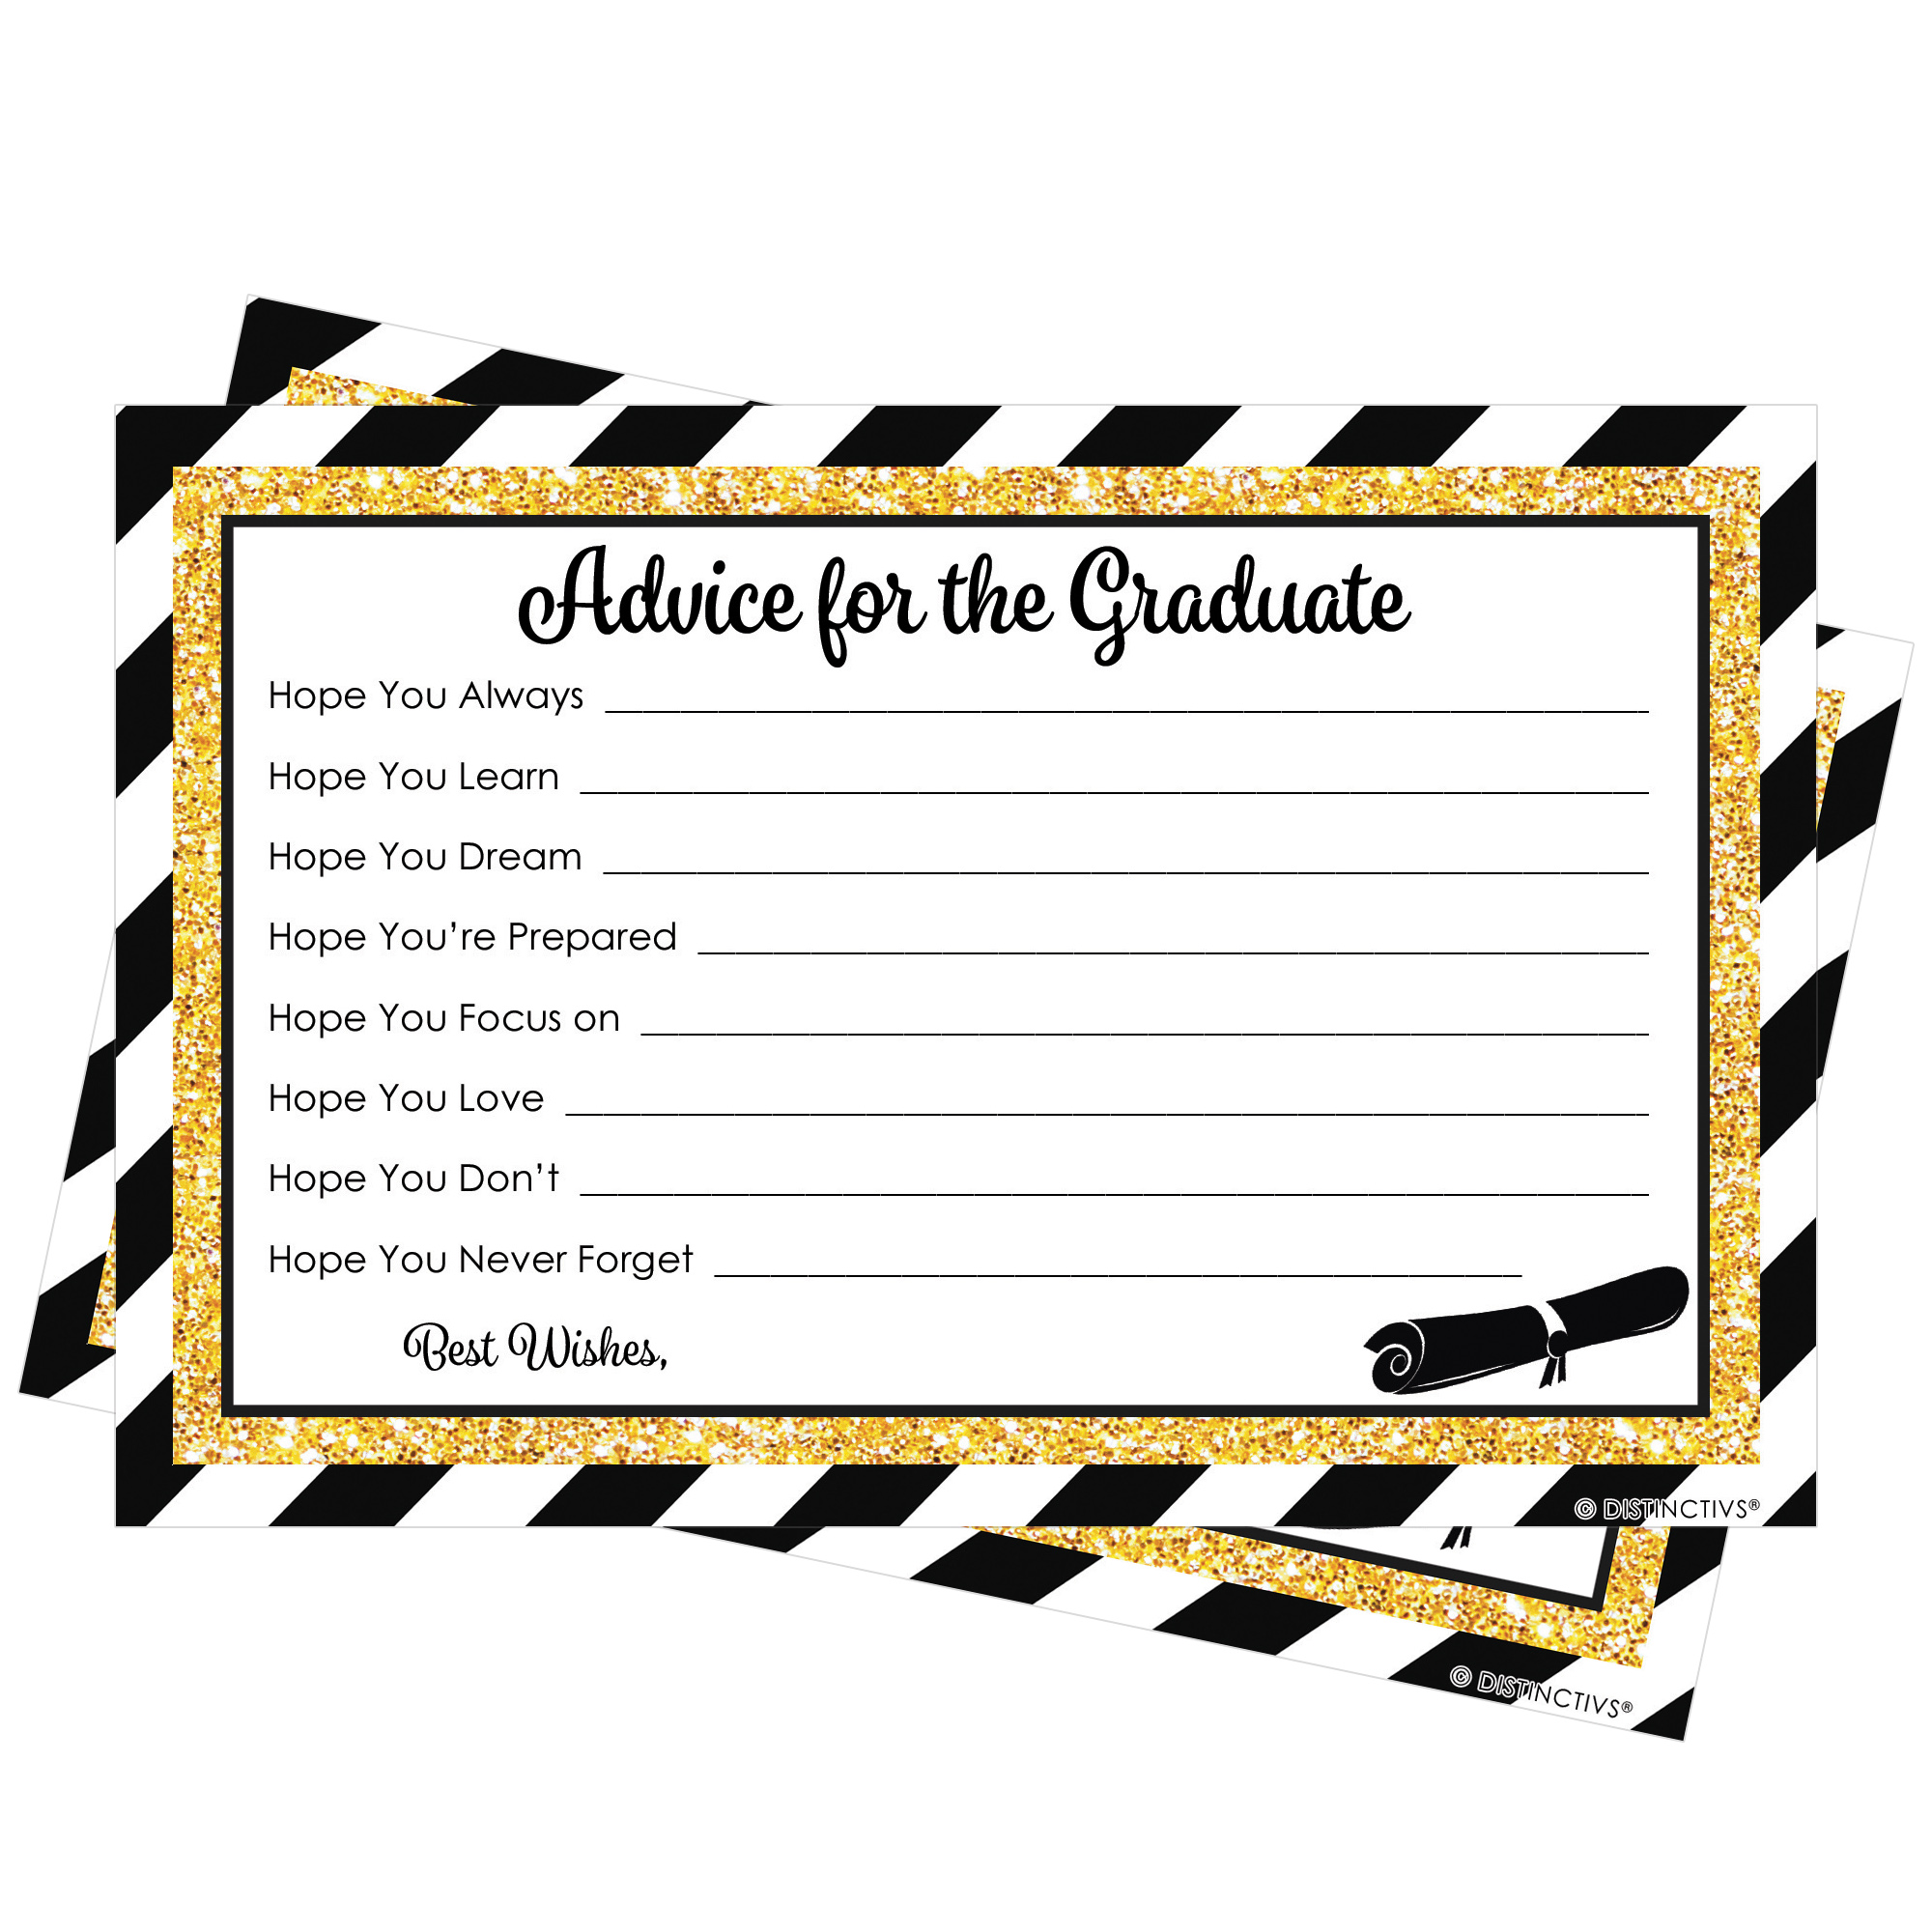 25 Graduation Party Advice Cards, Black and Gold